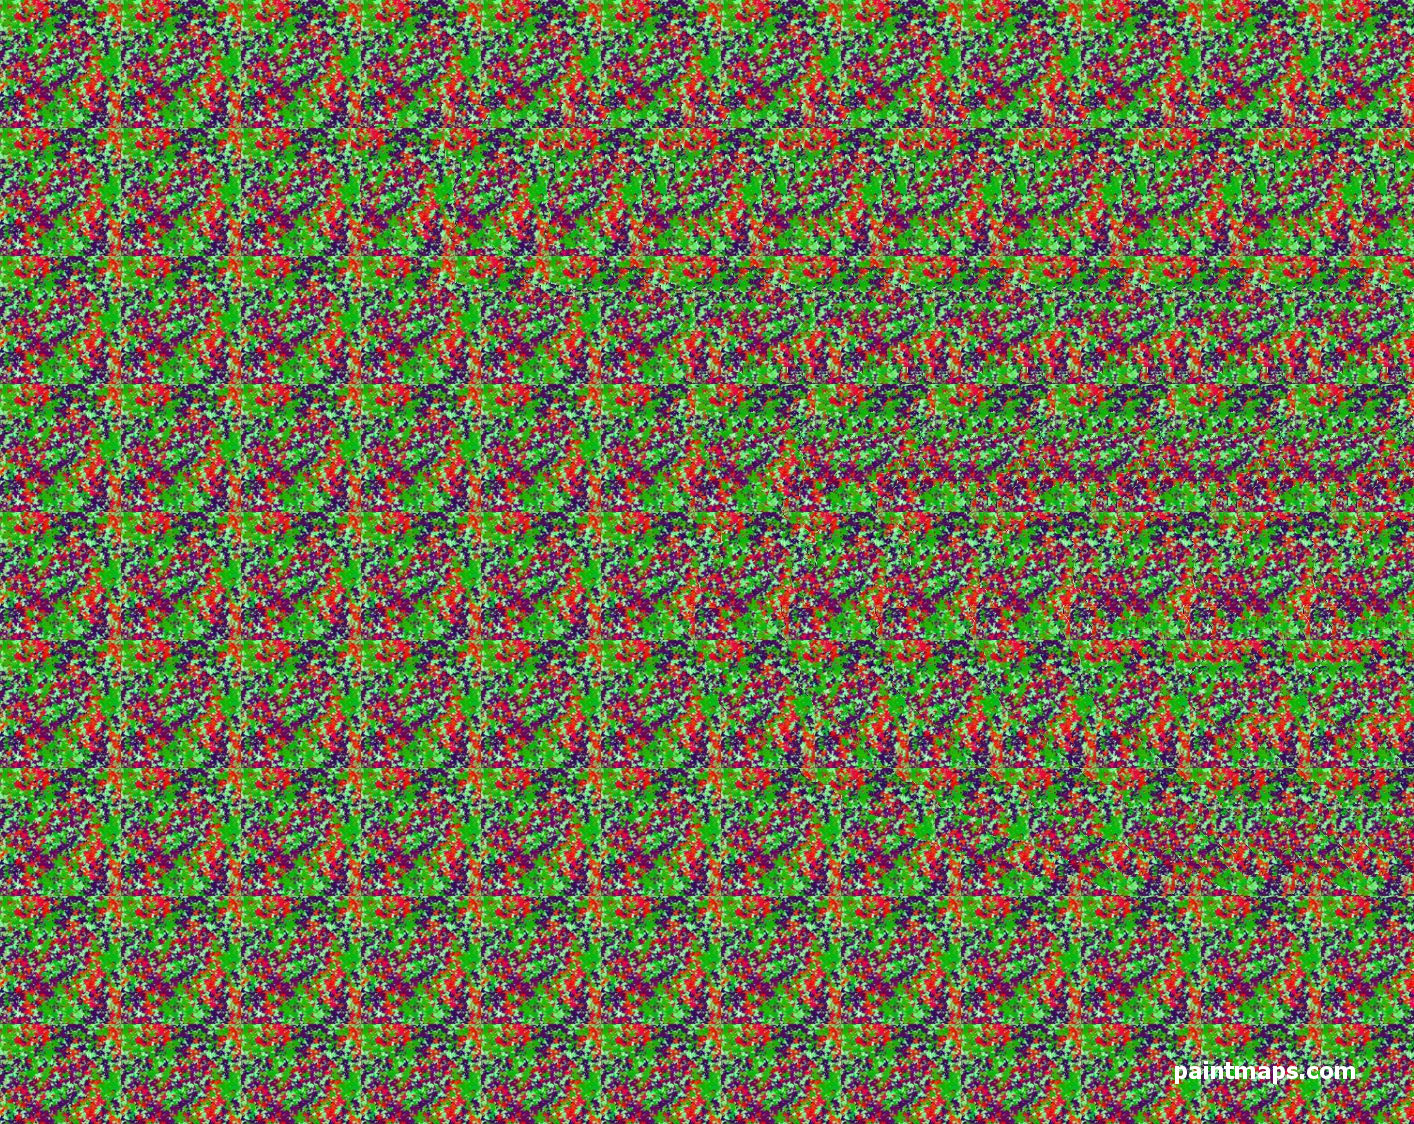 MALTA Map in 3D Stereogram (Magic Eye)